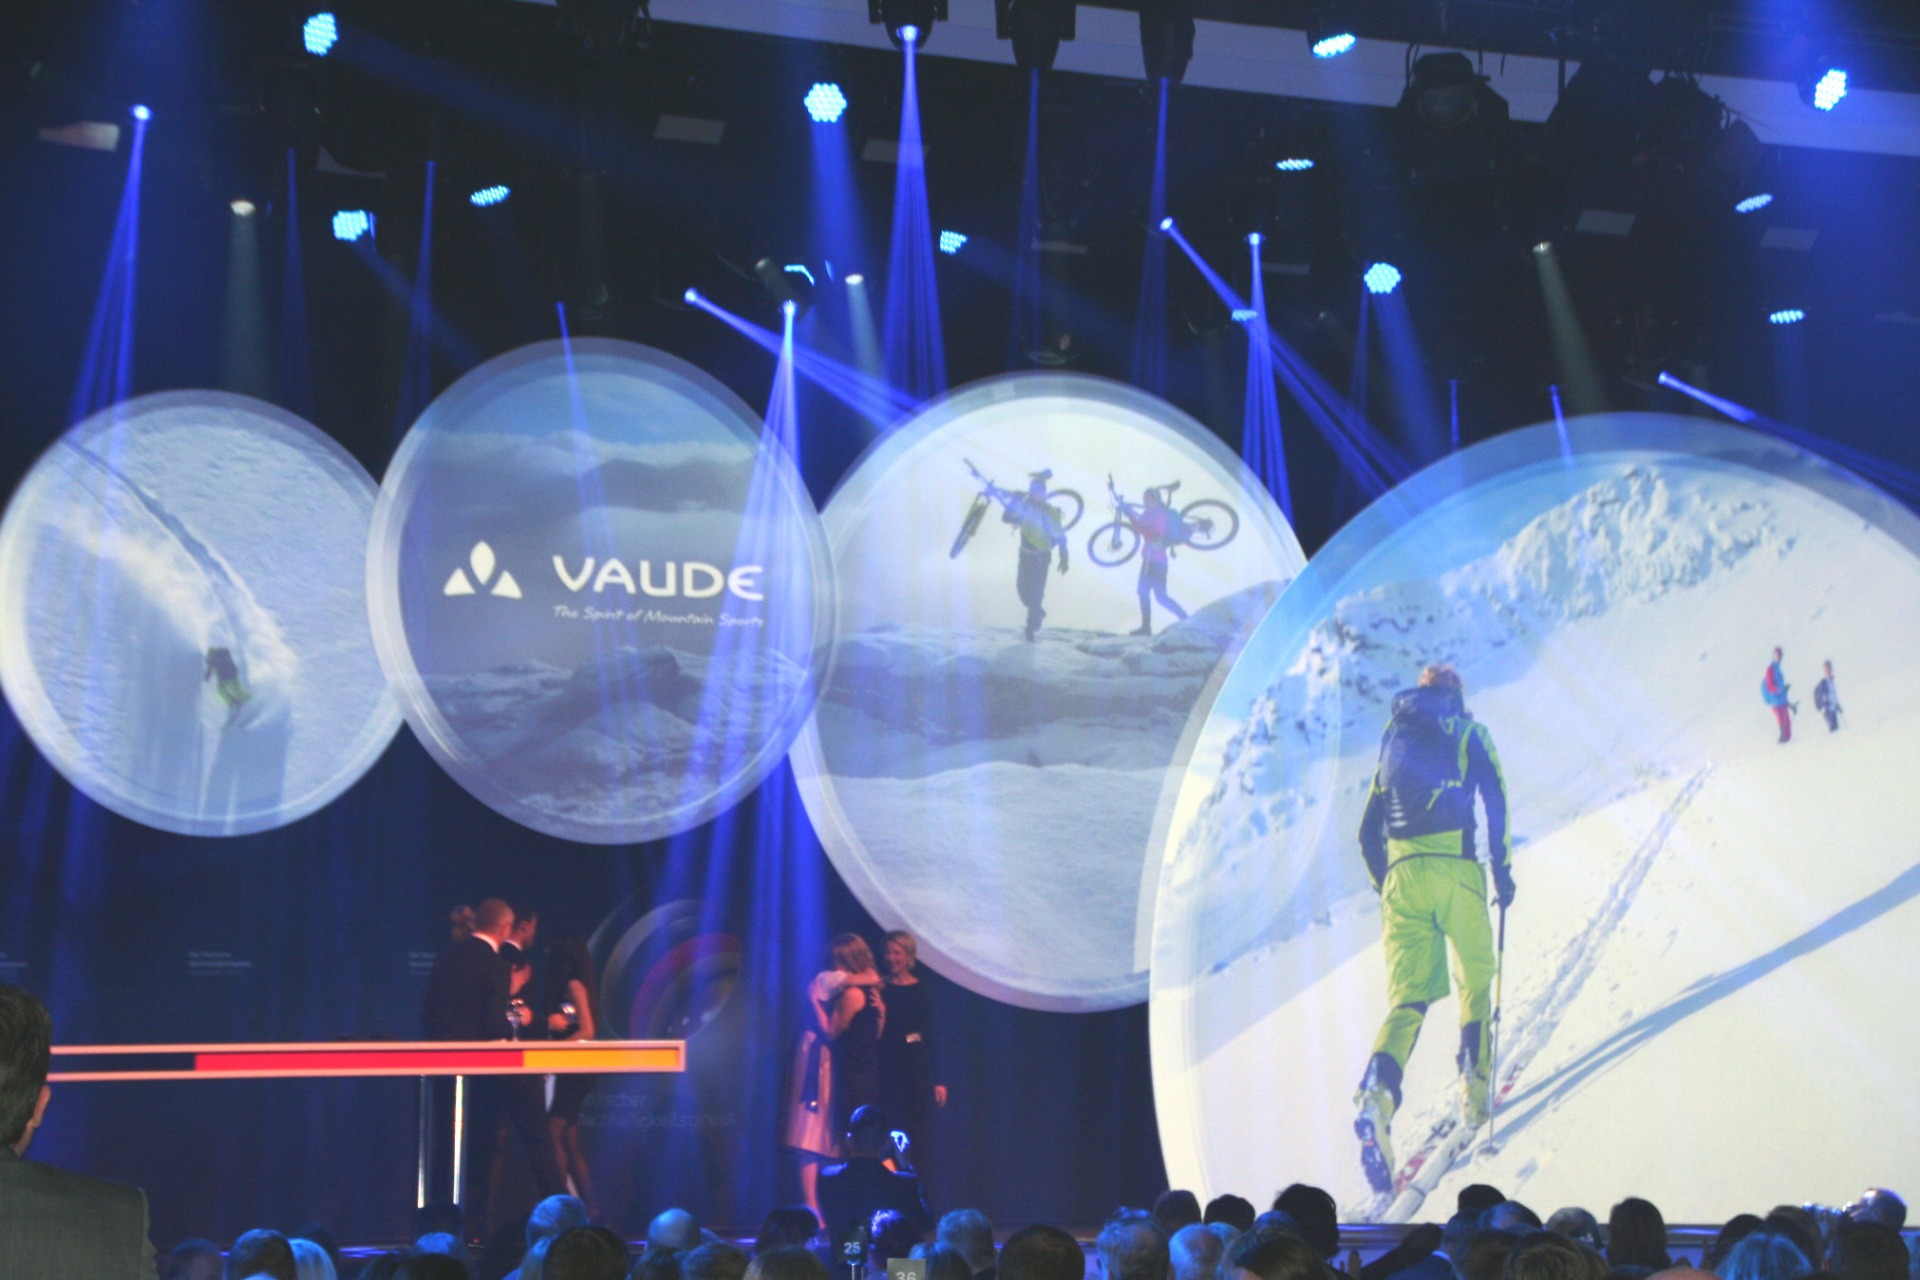 VAUDE is Germany's most sustainable brand